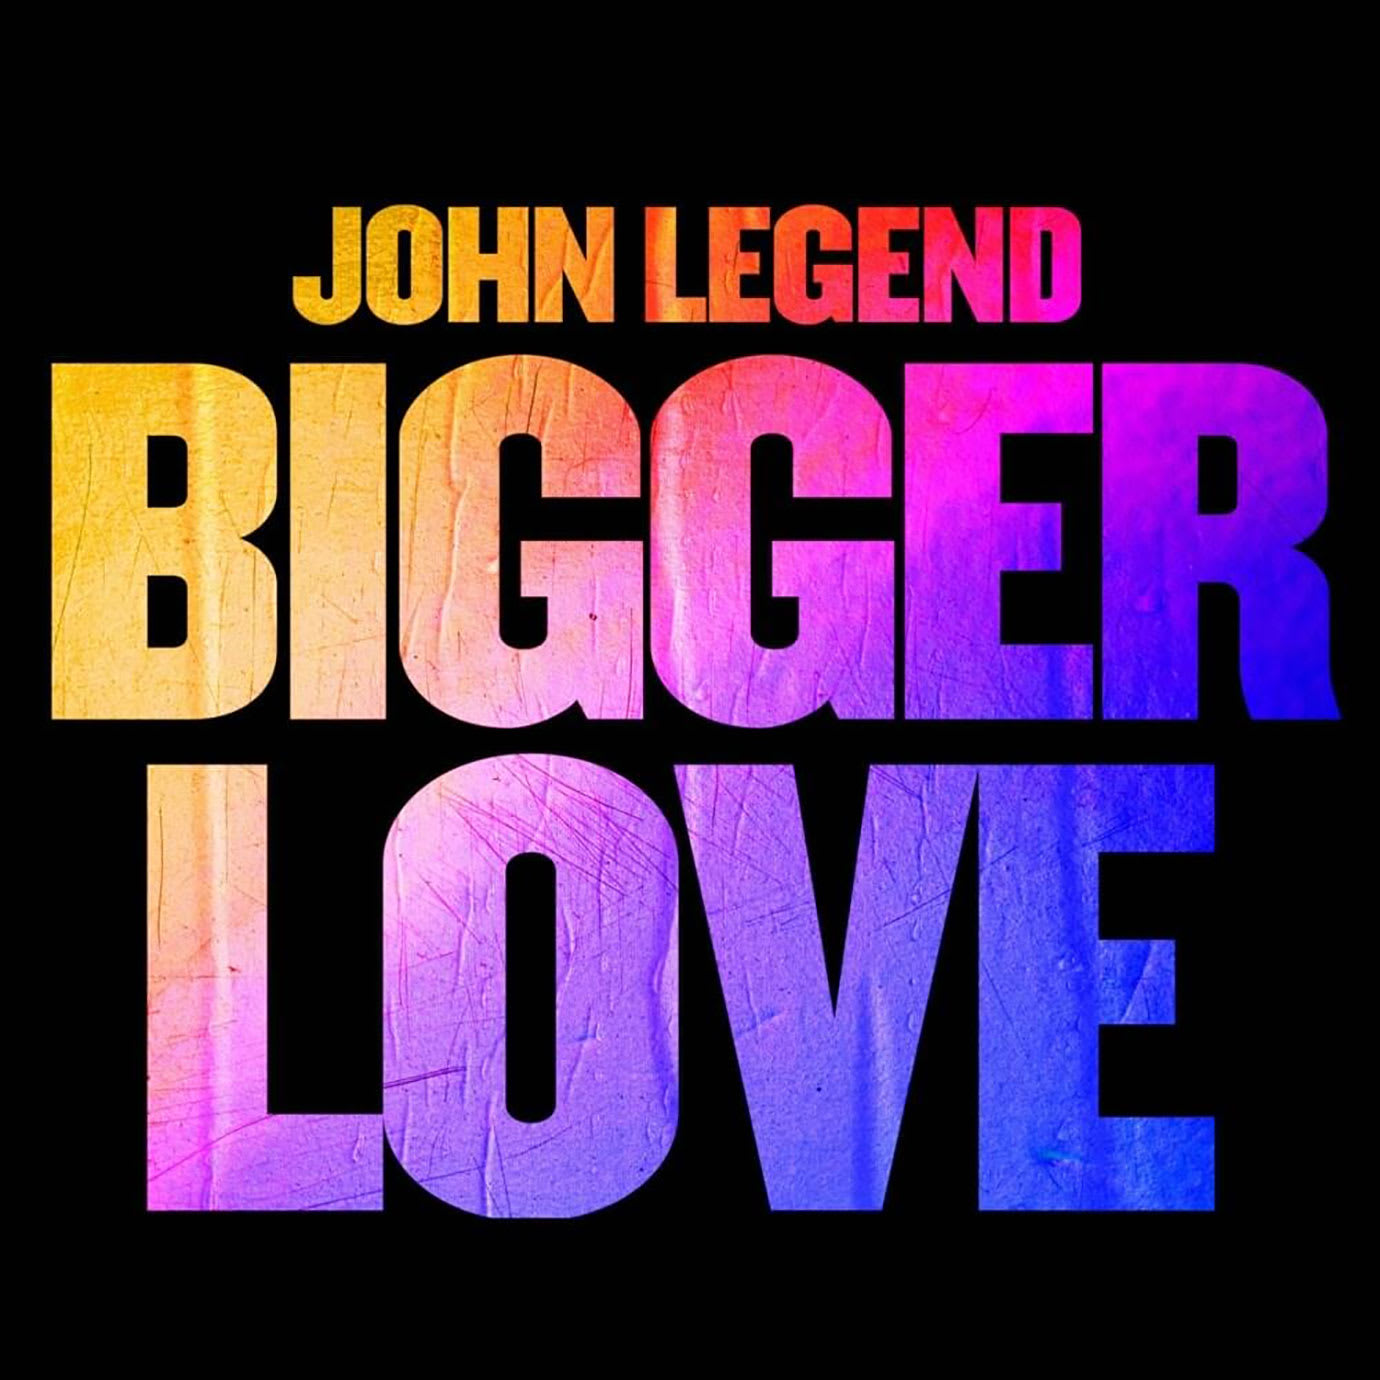 An album cover with John Legend Bigger Love written on it in colourful type.